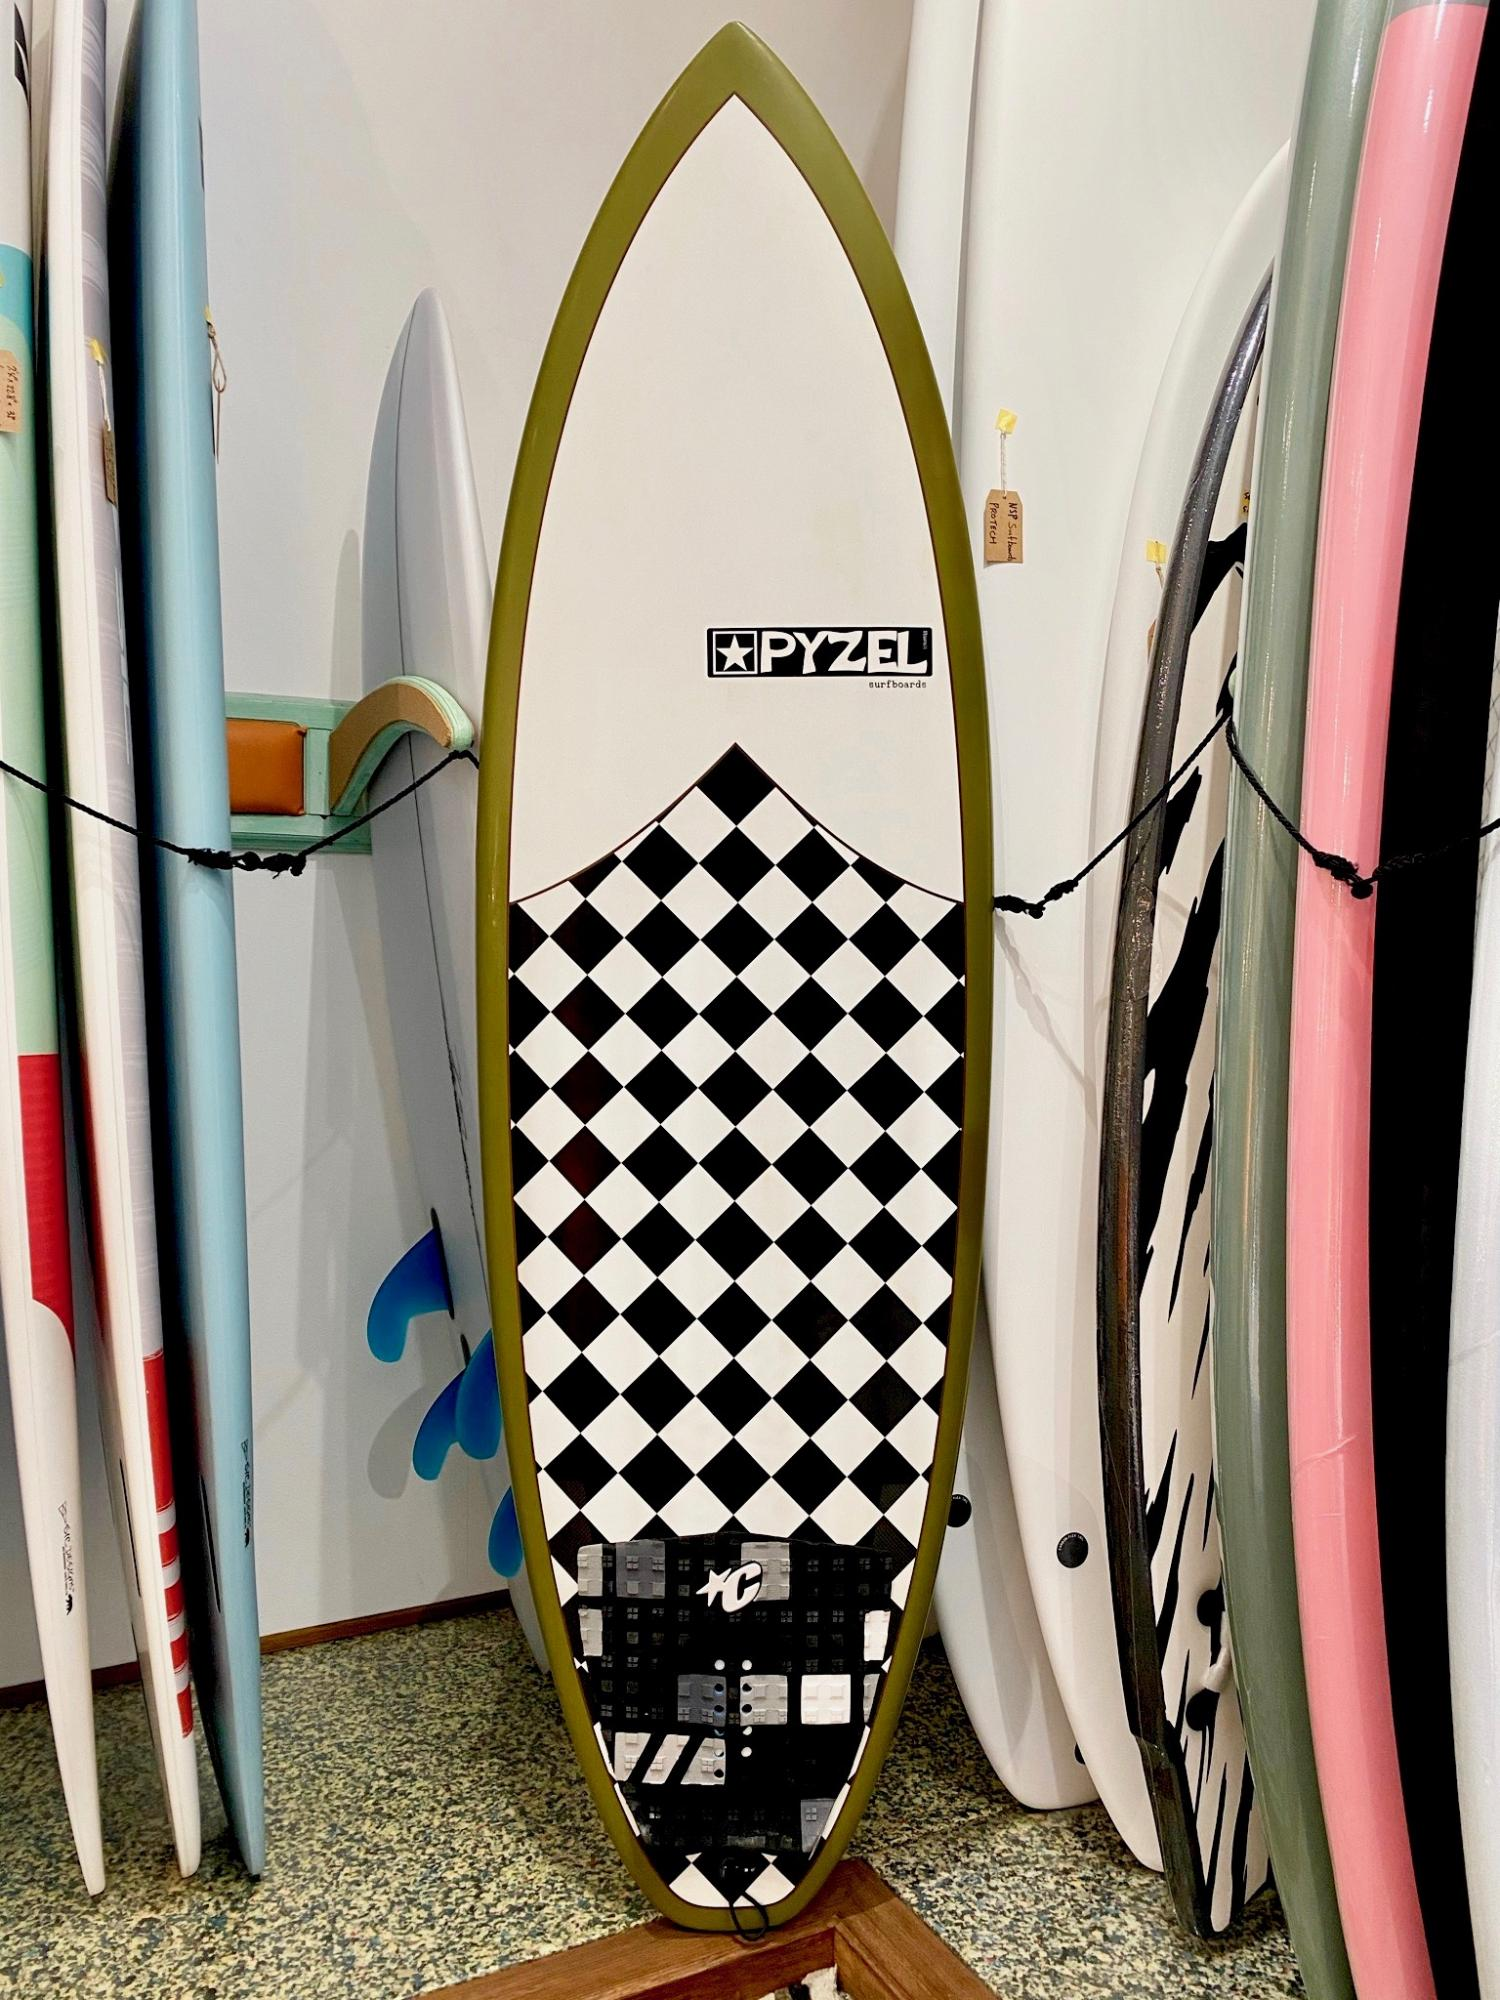 USED BOARDS (PYZEL SURFBOARDS-NUGGET 5.10)